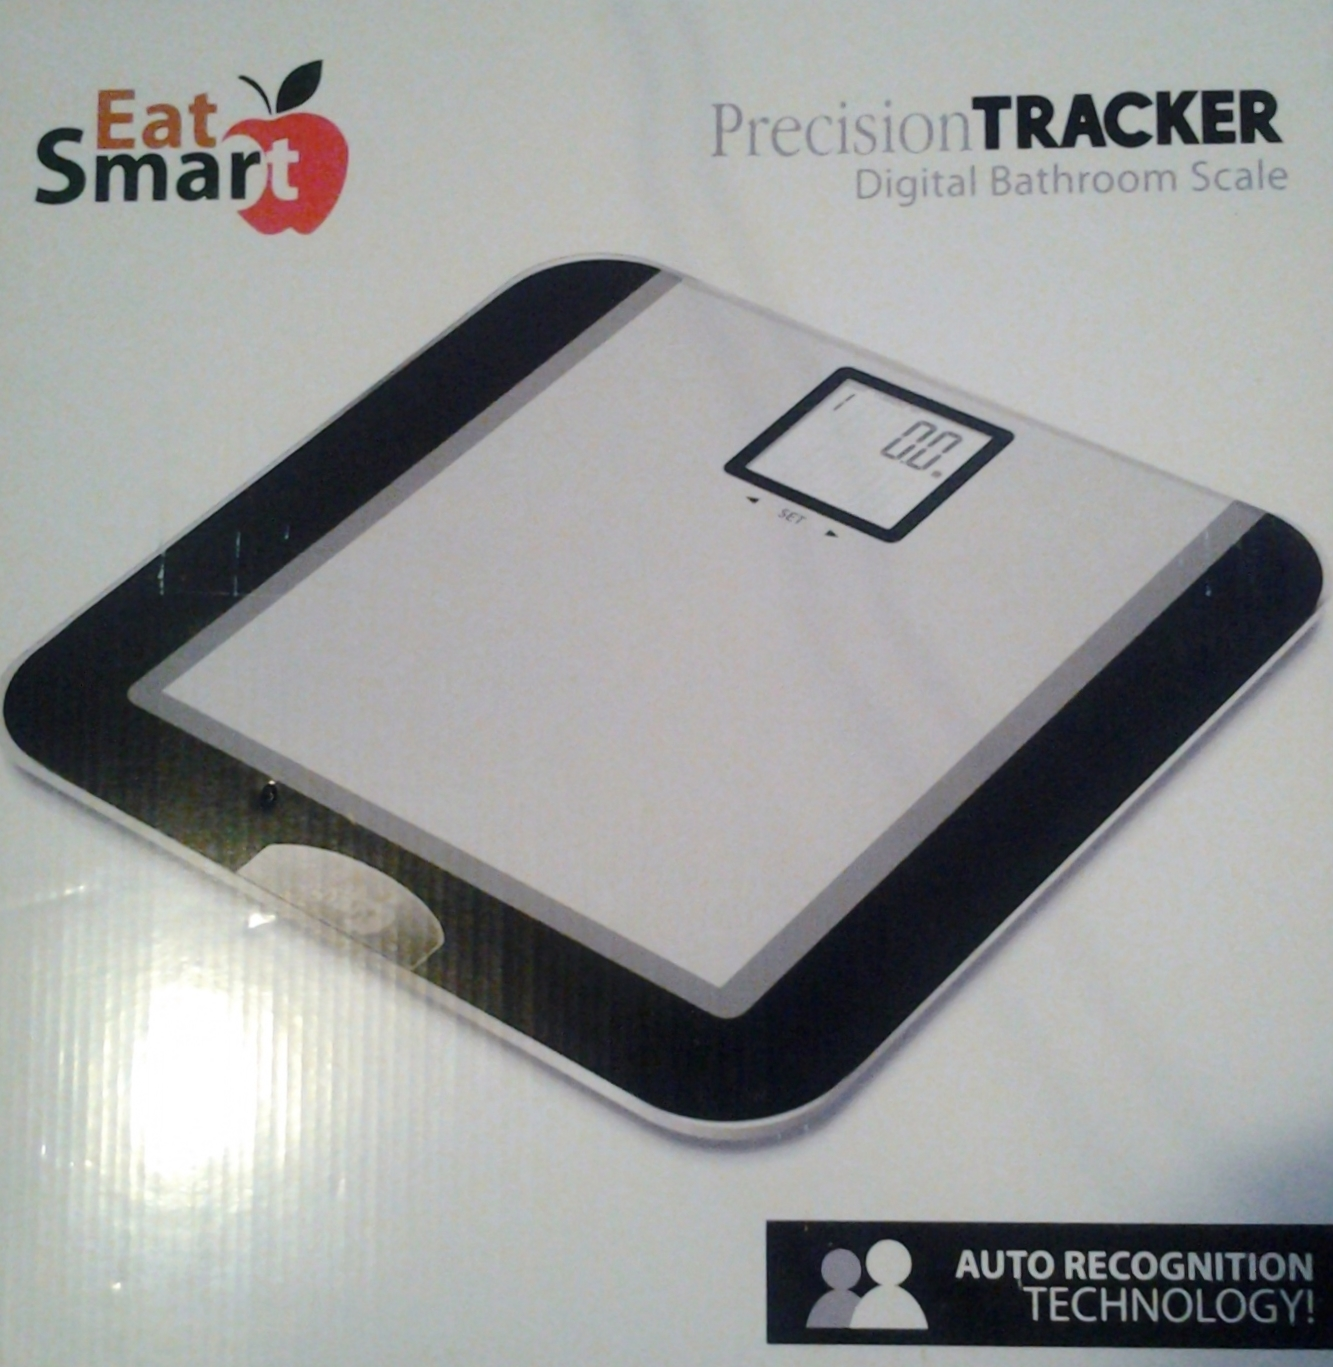 The Precision Tracker Digital Bathroom Scale Helps Users Track Their Weight  Over A Period Of Time. Each Time You Step On The Scale, It Shows You Your  ...